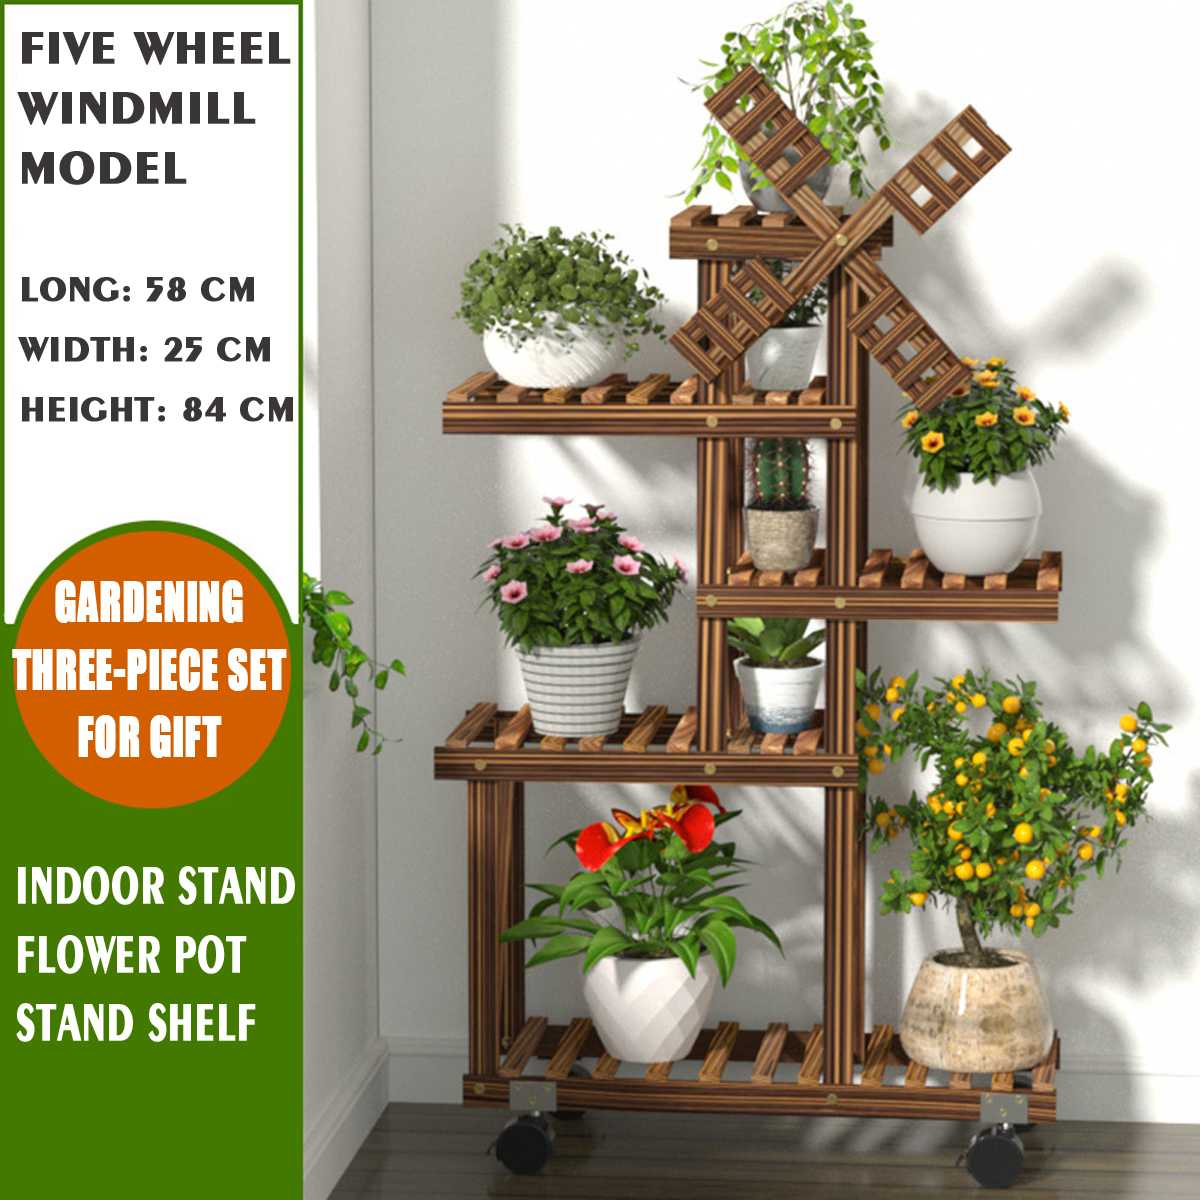 Wood Flower Rack Plant Stand Shelves Bonsai Display Shelf Outdoor Indoor Yard Garden Patio Balcony Flower Stands Plant Shelves